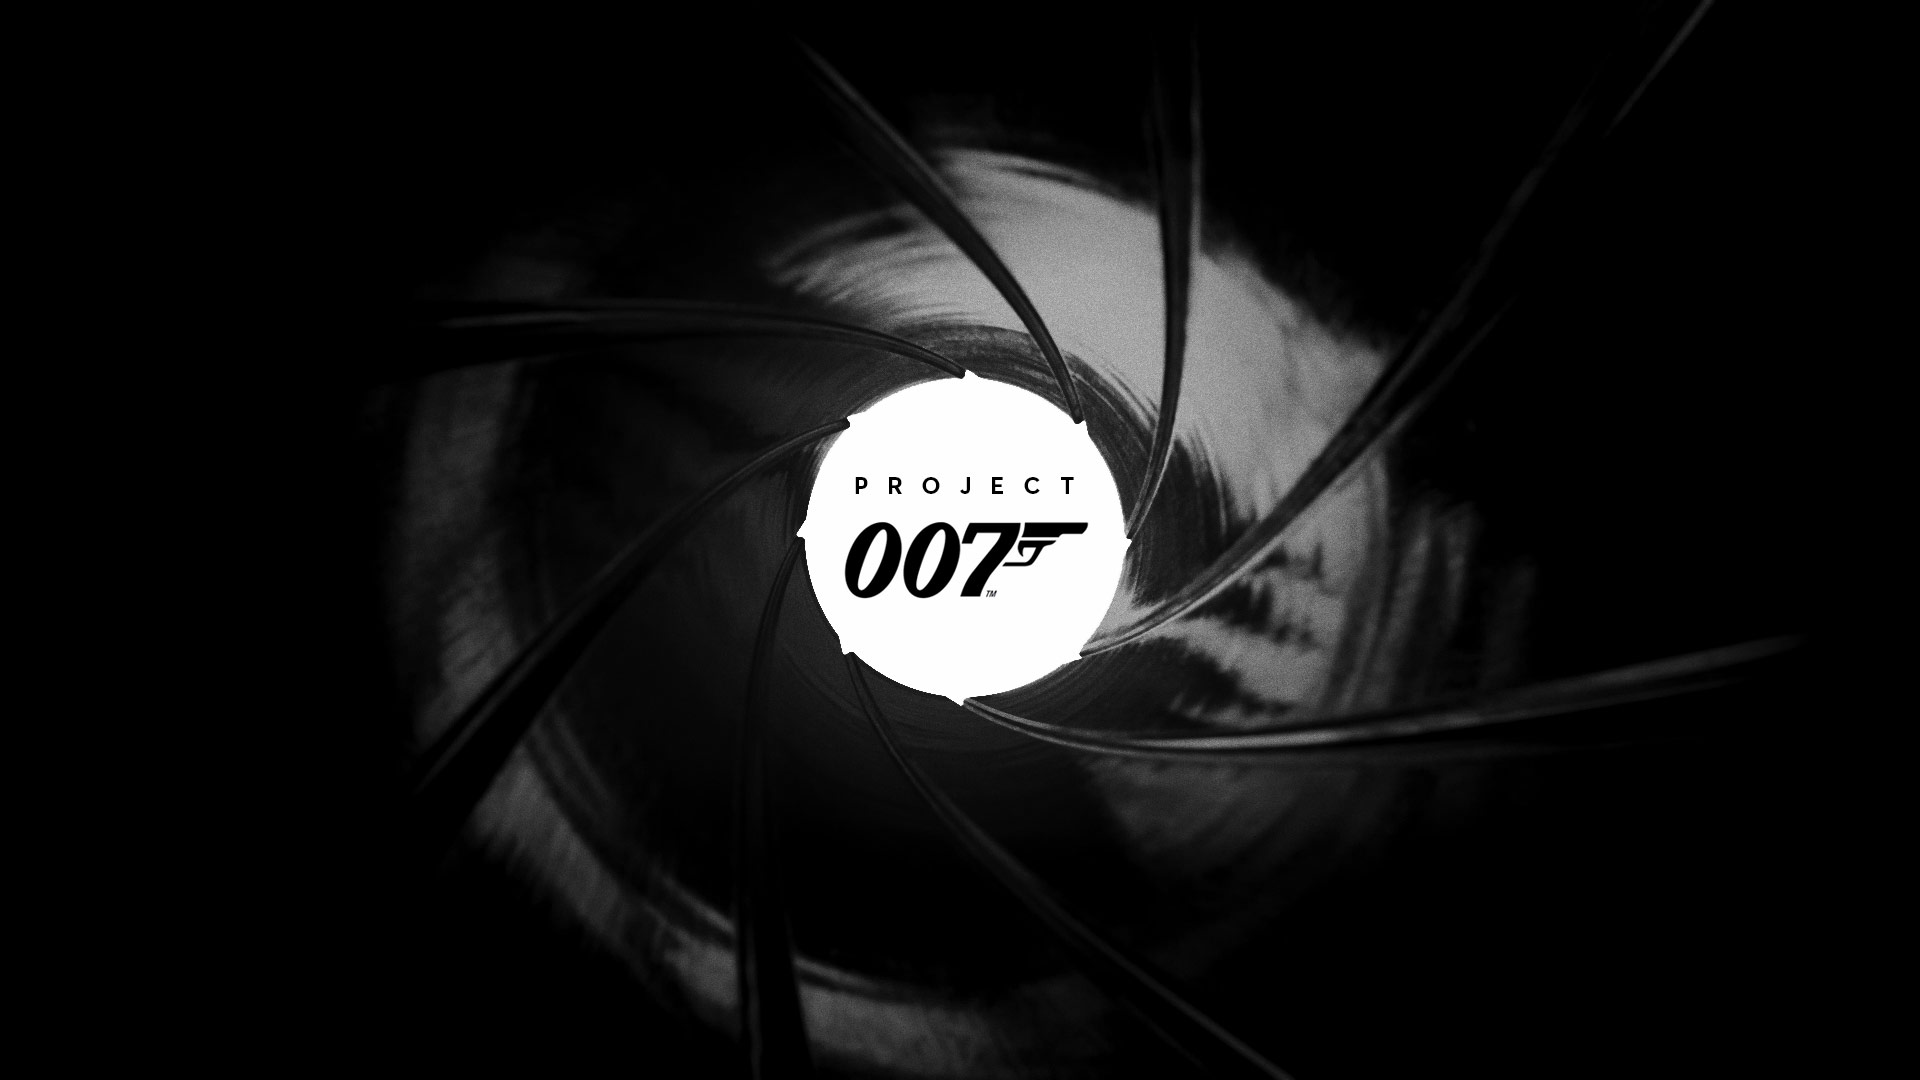 James Bond 007: Details of the new game from the Hitman developers